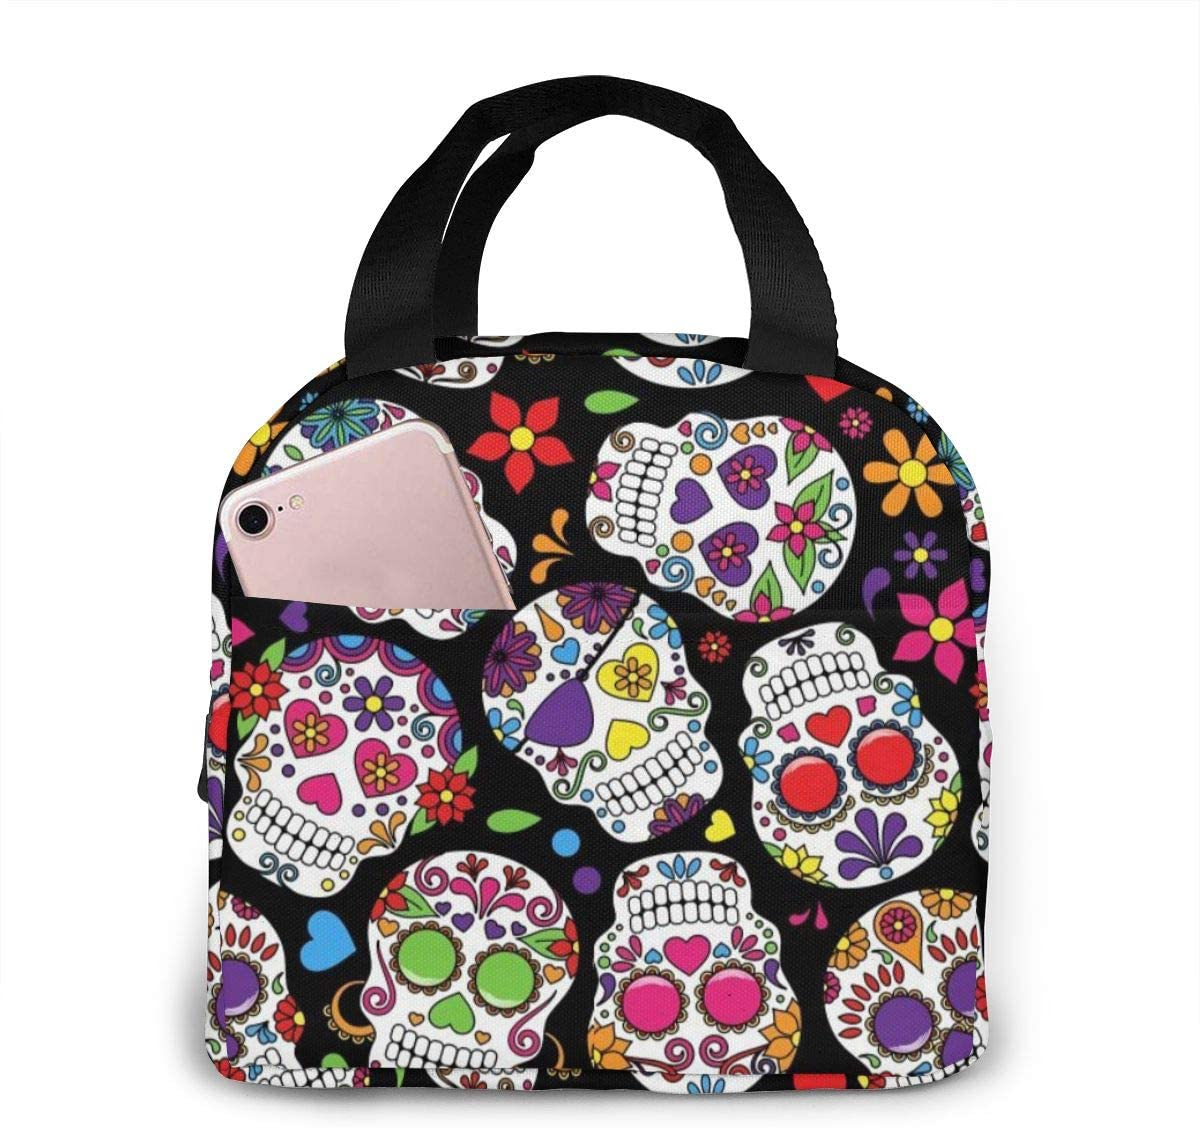 ~ Lunch Bag A Day's Worth of Dead Sugar Skull for Women Girls Kids Insulated Picnic Pouch Thermal Cooler Tote Cute Bento Bag Big Leakproof Soft Bags Lunch Camping Box Bags